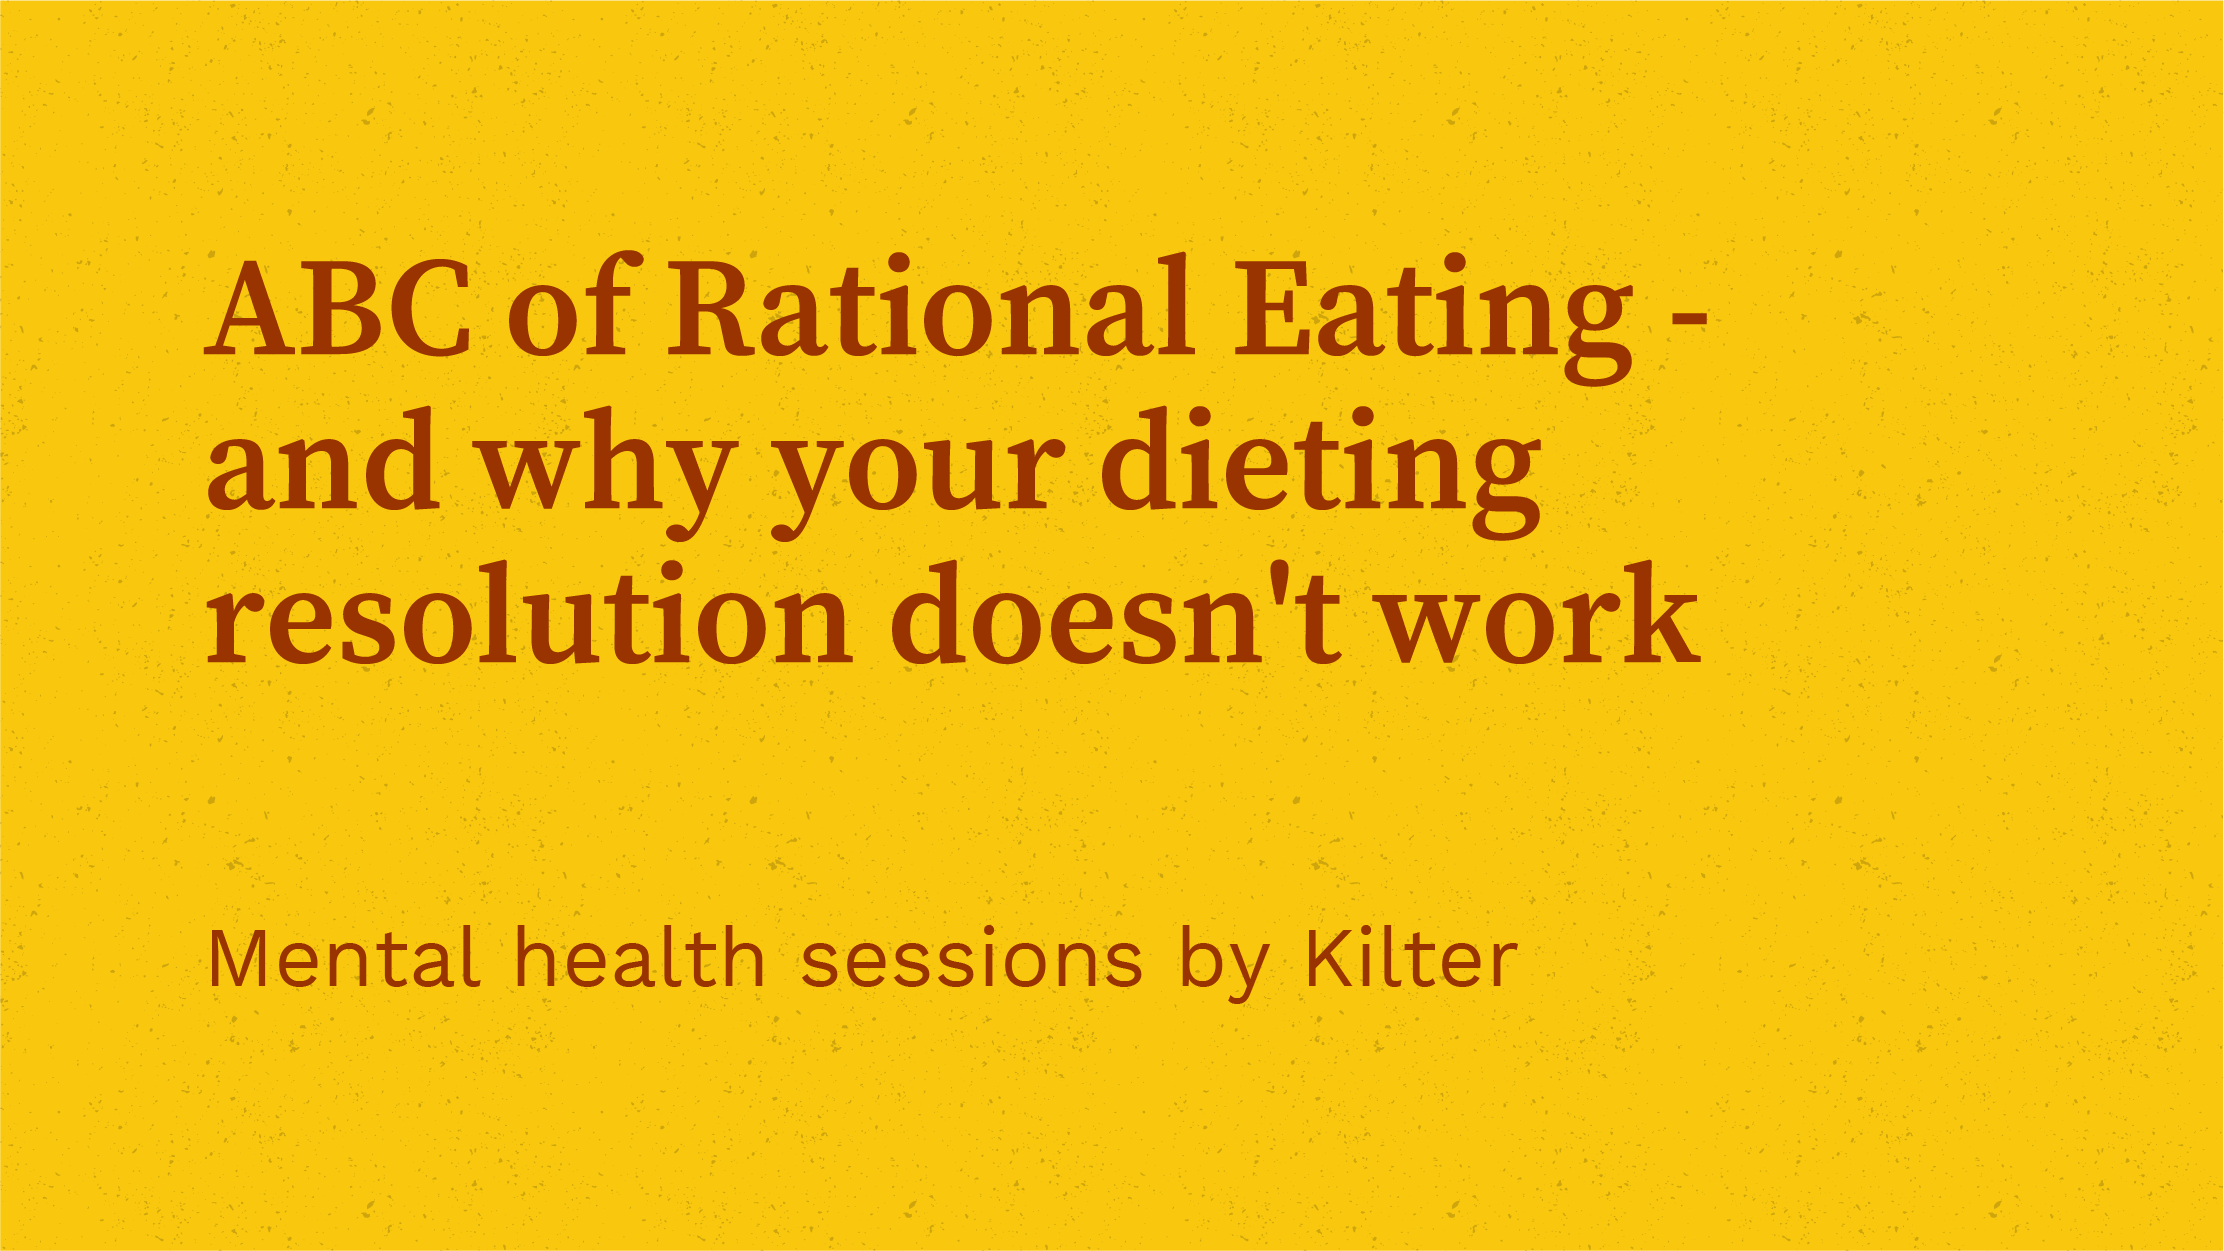 ABC of Rational Eating - and why your dieting resolution doesn't work